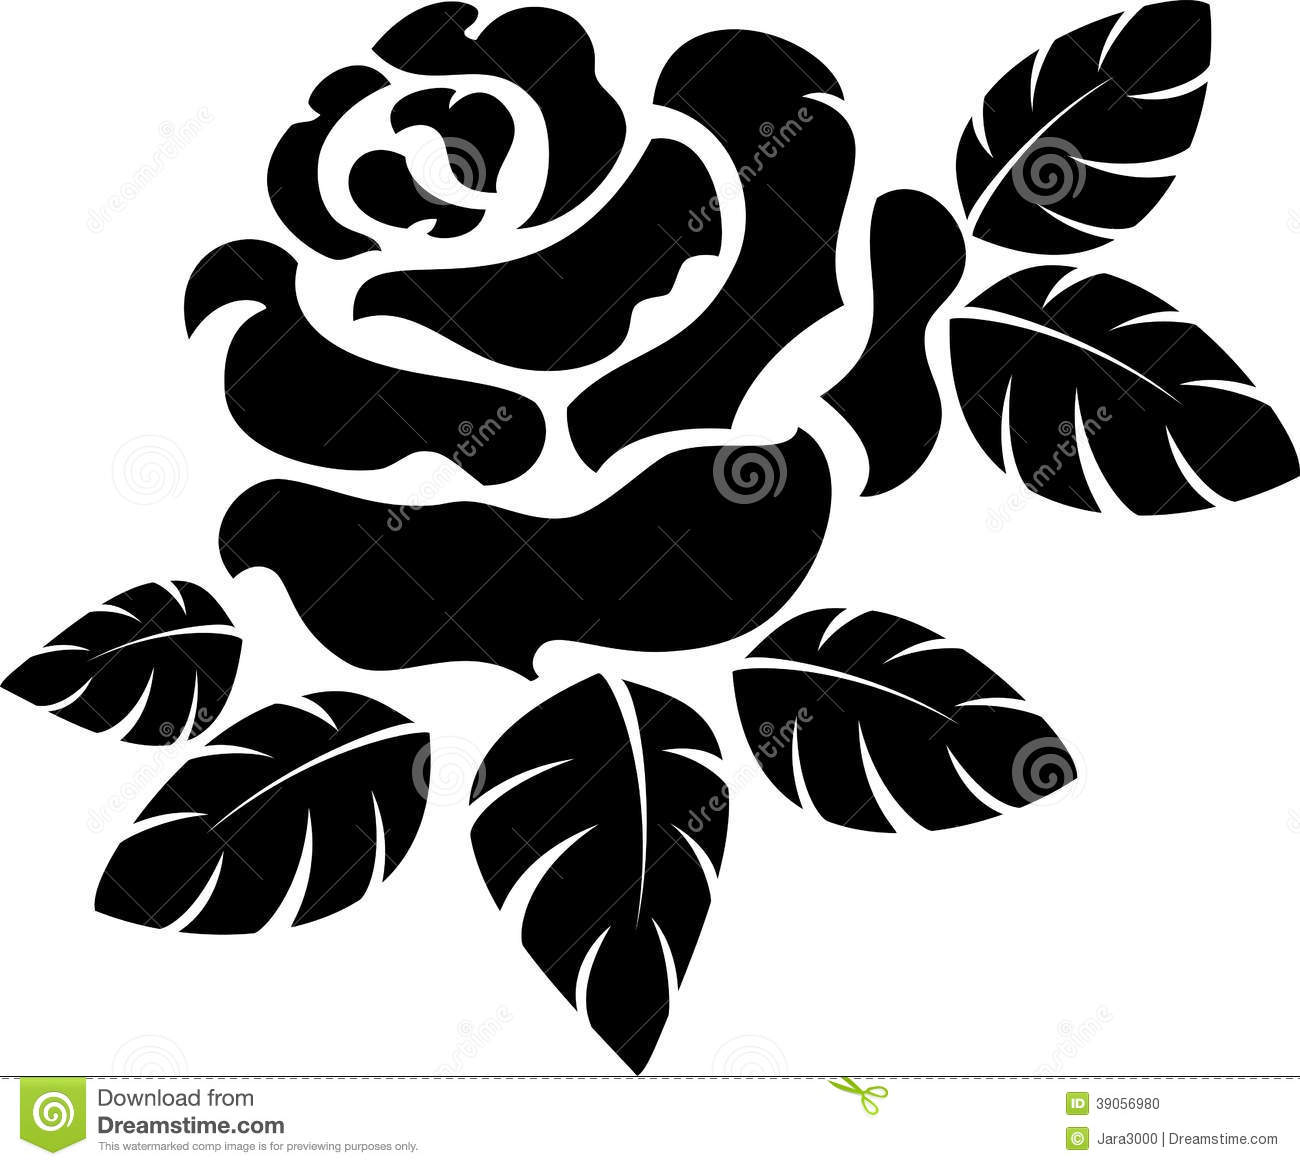 Vector rose silhouette isolated on white. EPS 10.